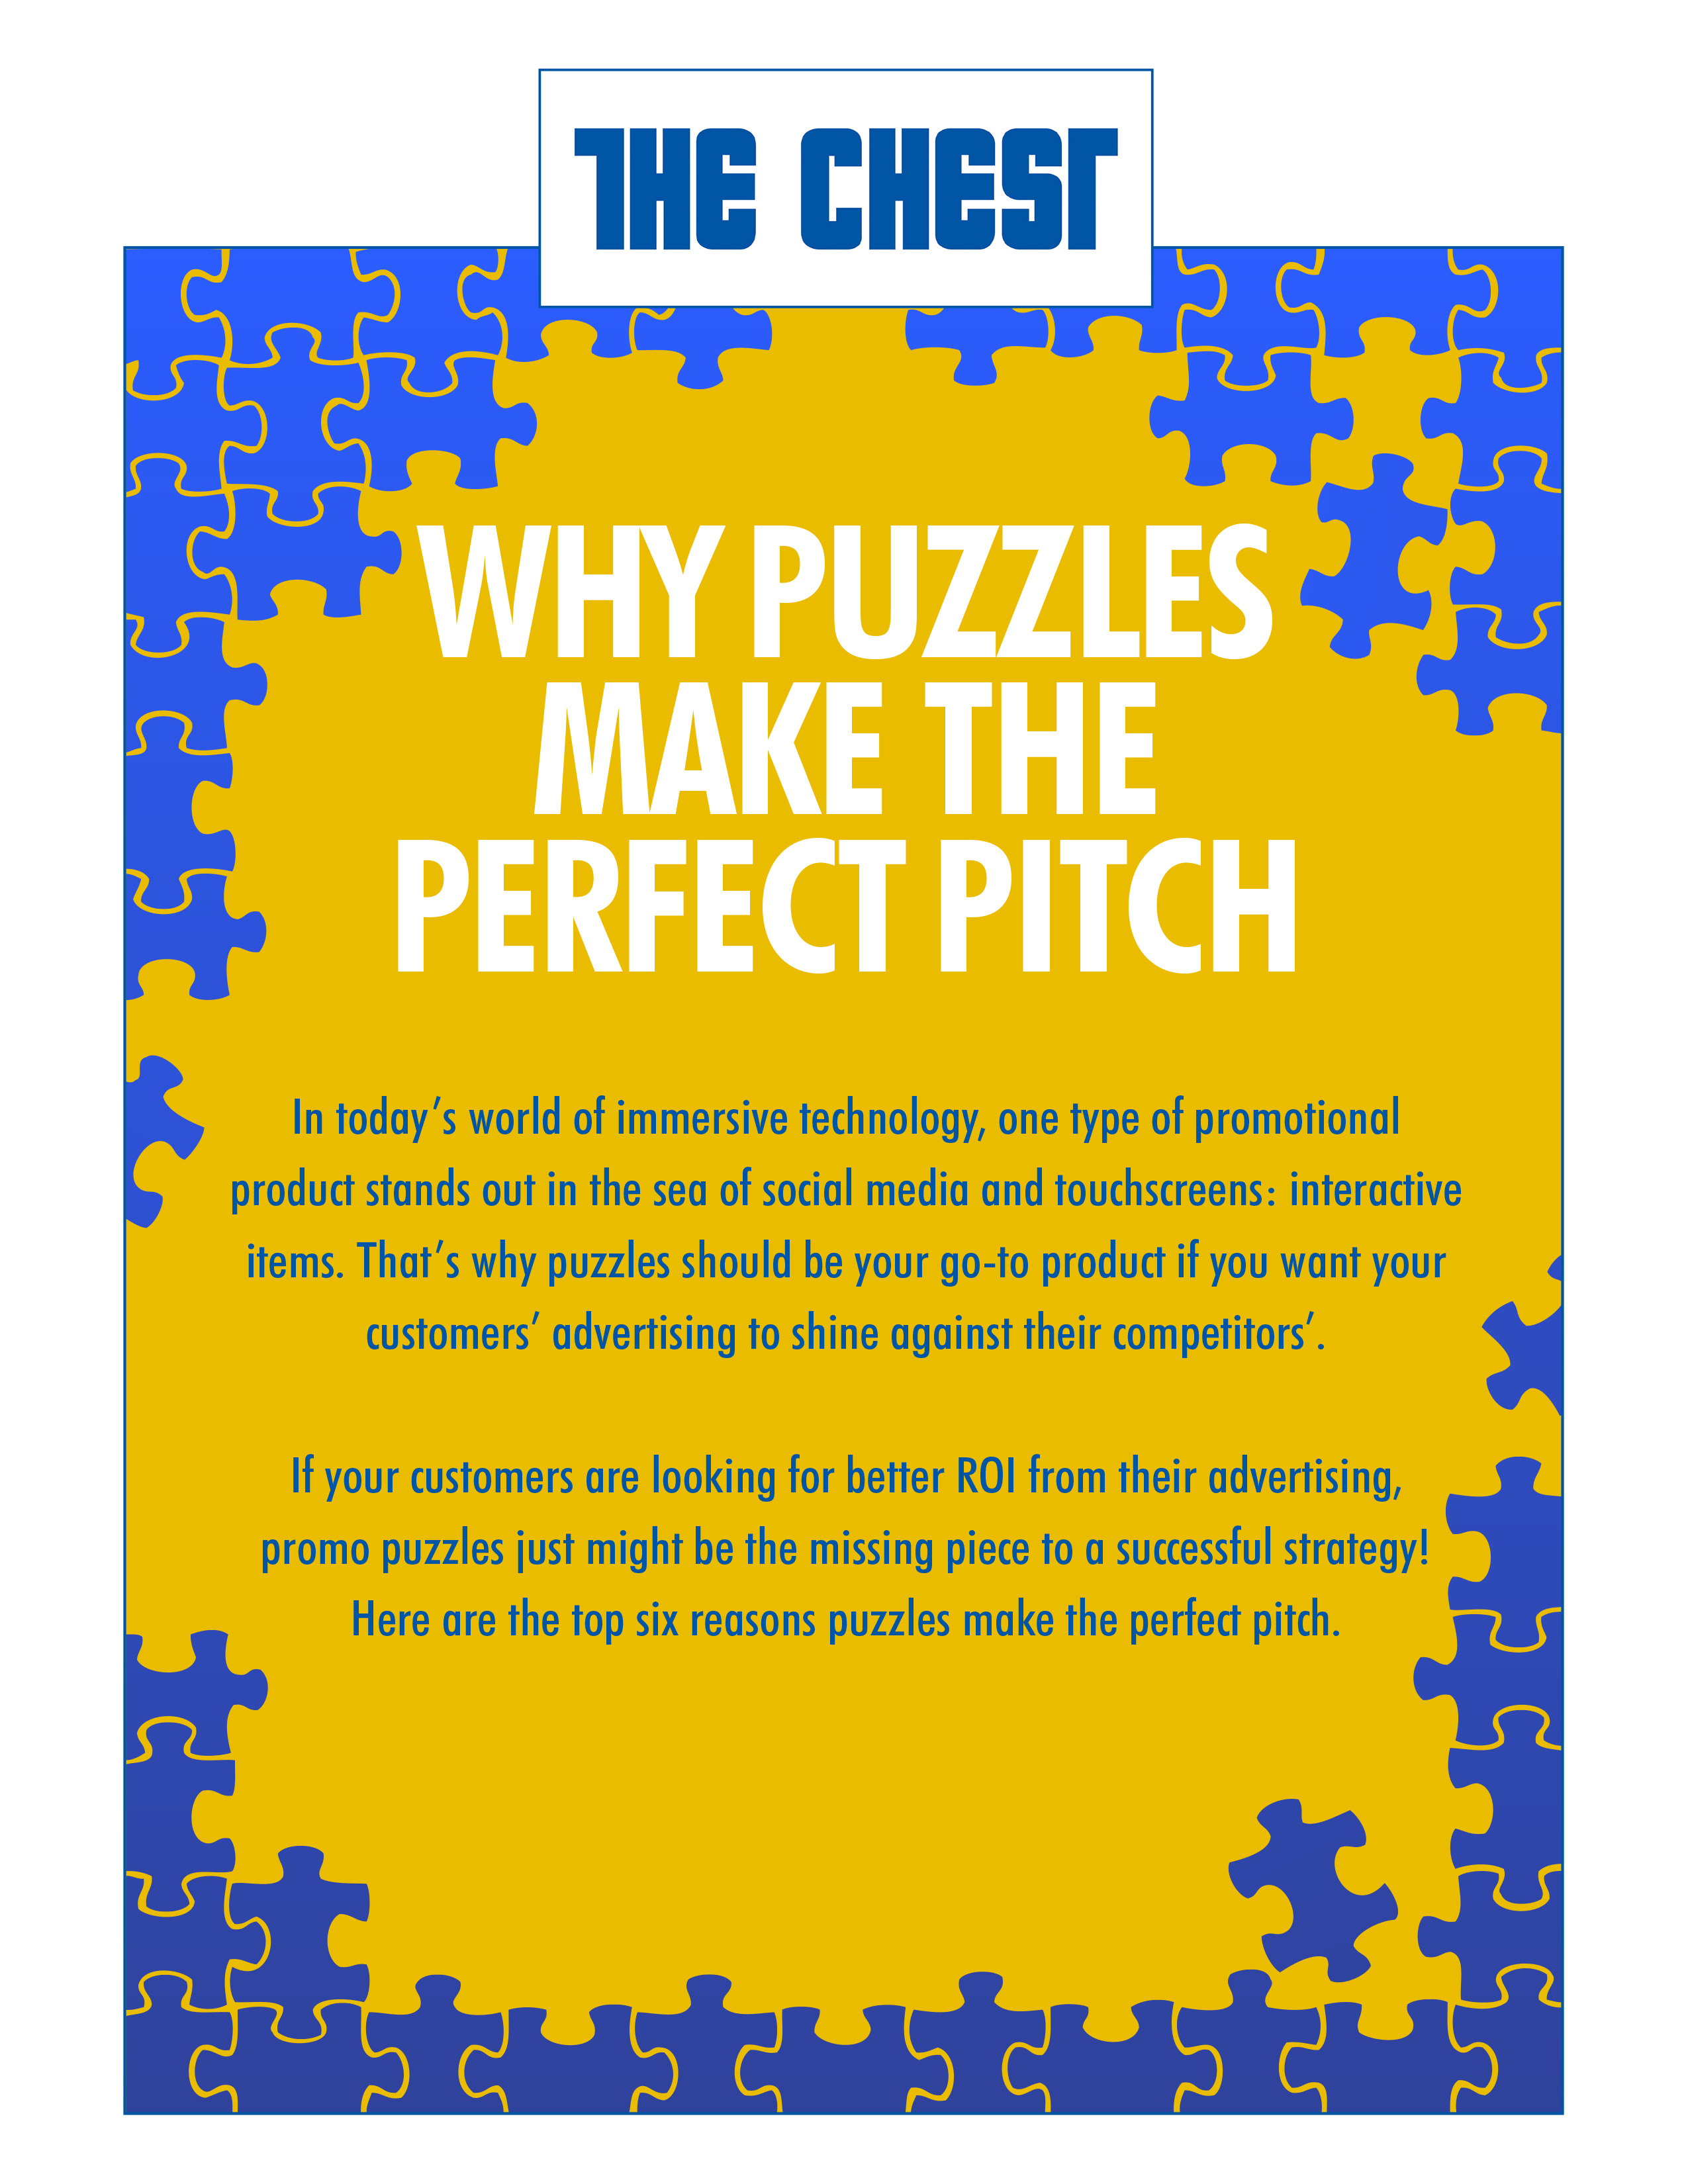 Puzzles Promo-Content Marketing Piece-Page 1.jpg